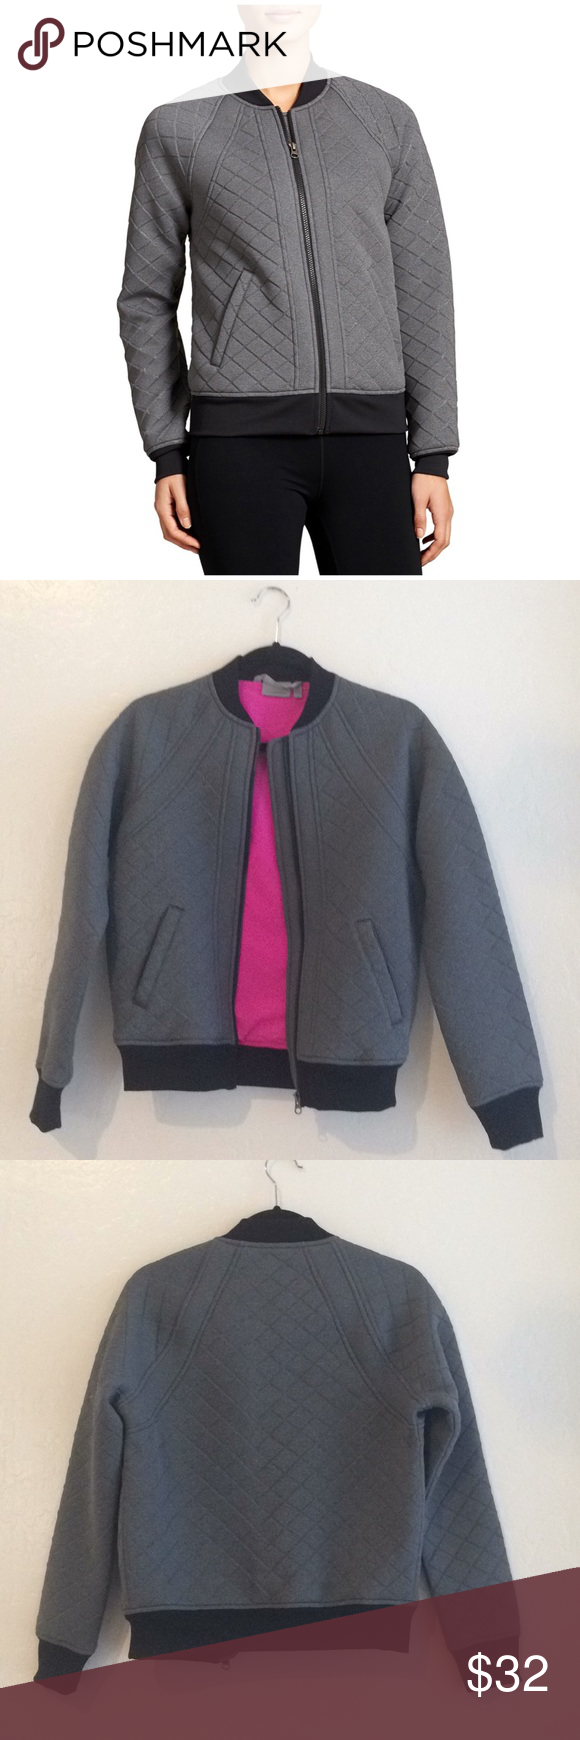 Athleta Infusion Bomber Jacket Athleta Infusion Bomber Jacket Quilted Look Bright Pink Lining For A Fun Pop Of Color Gr Bomber Jacket Clothes Design Jackets [ 1740 x 580 Pixel ]